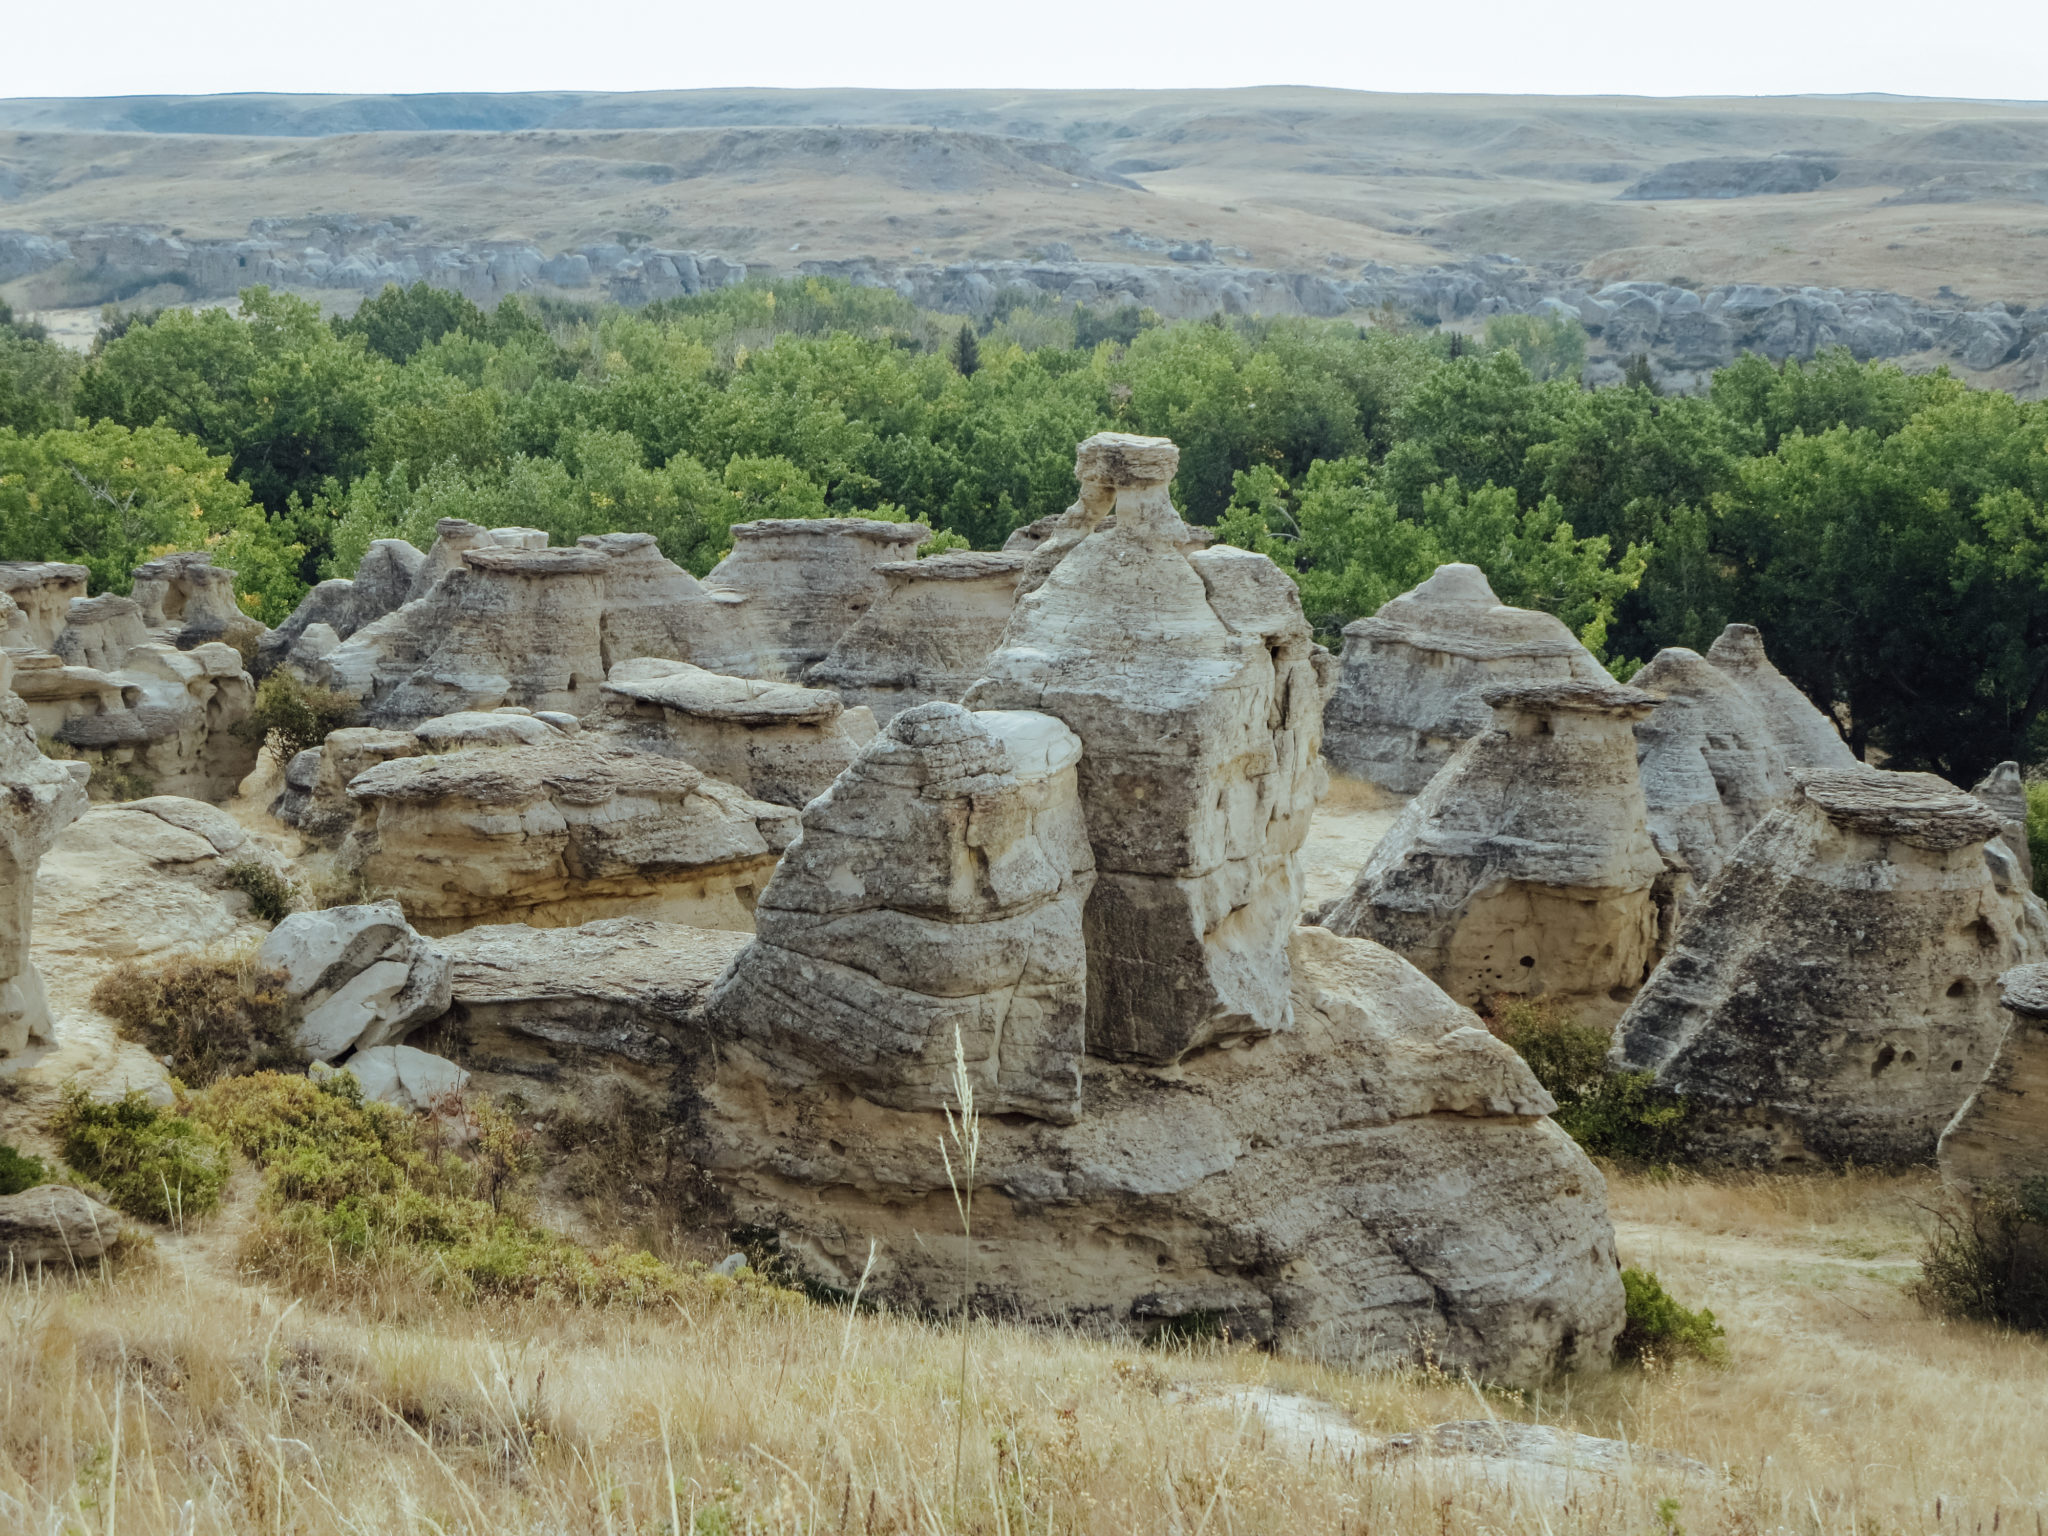 jana meermaan writing-on-stone provincial park-28